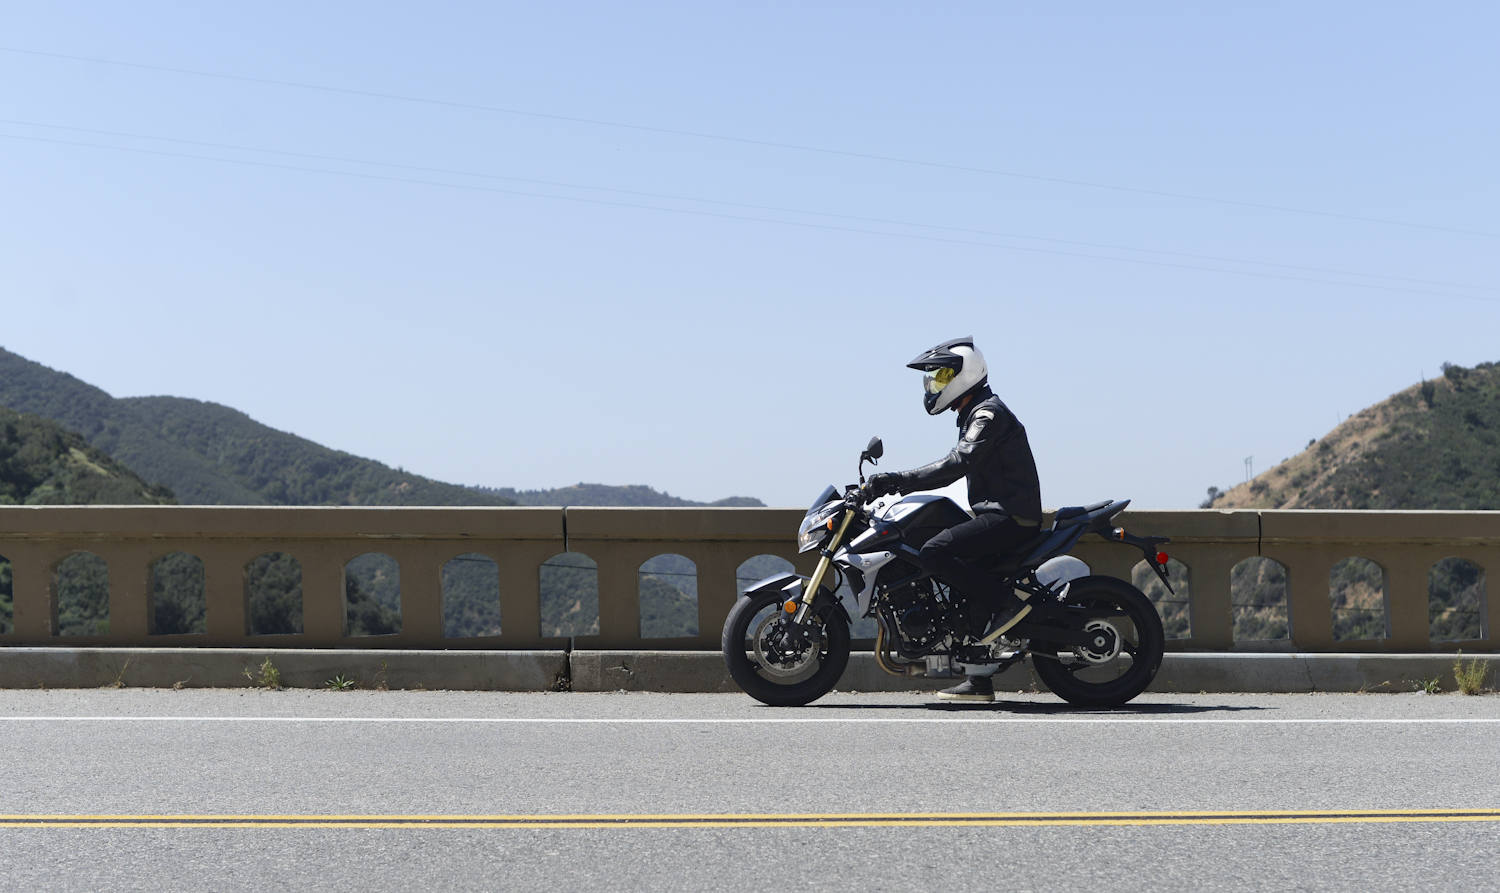 Where Suzuki went wrong with the 2015 GSX-S750 - RevZilla